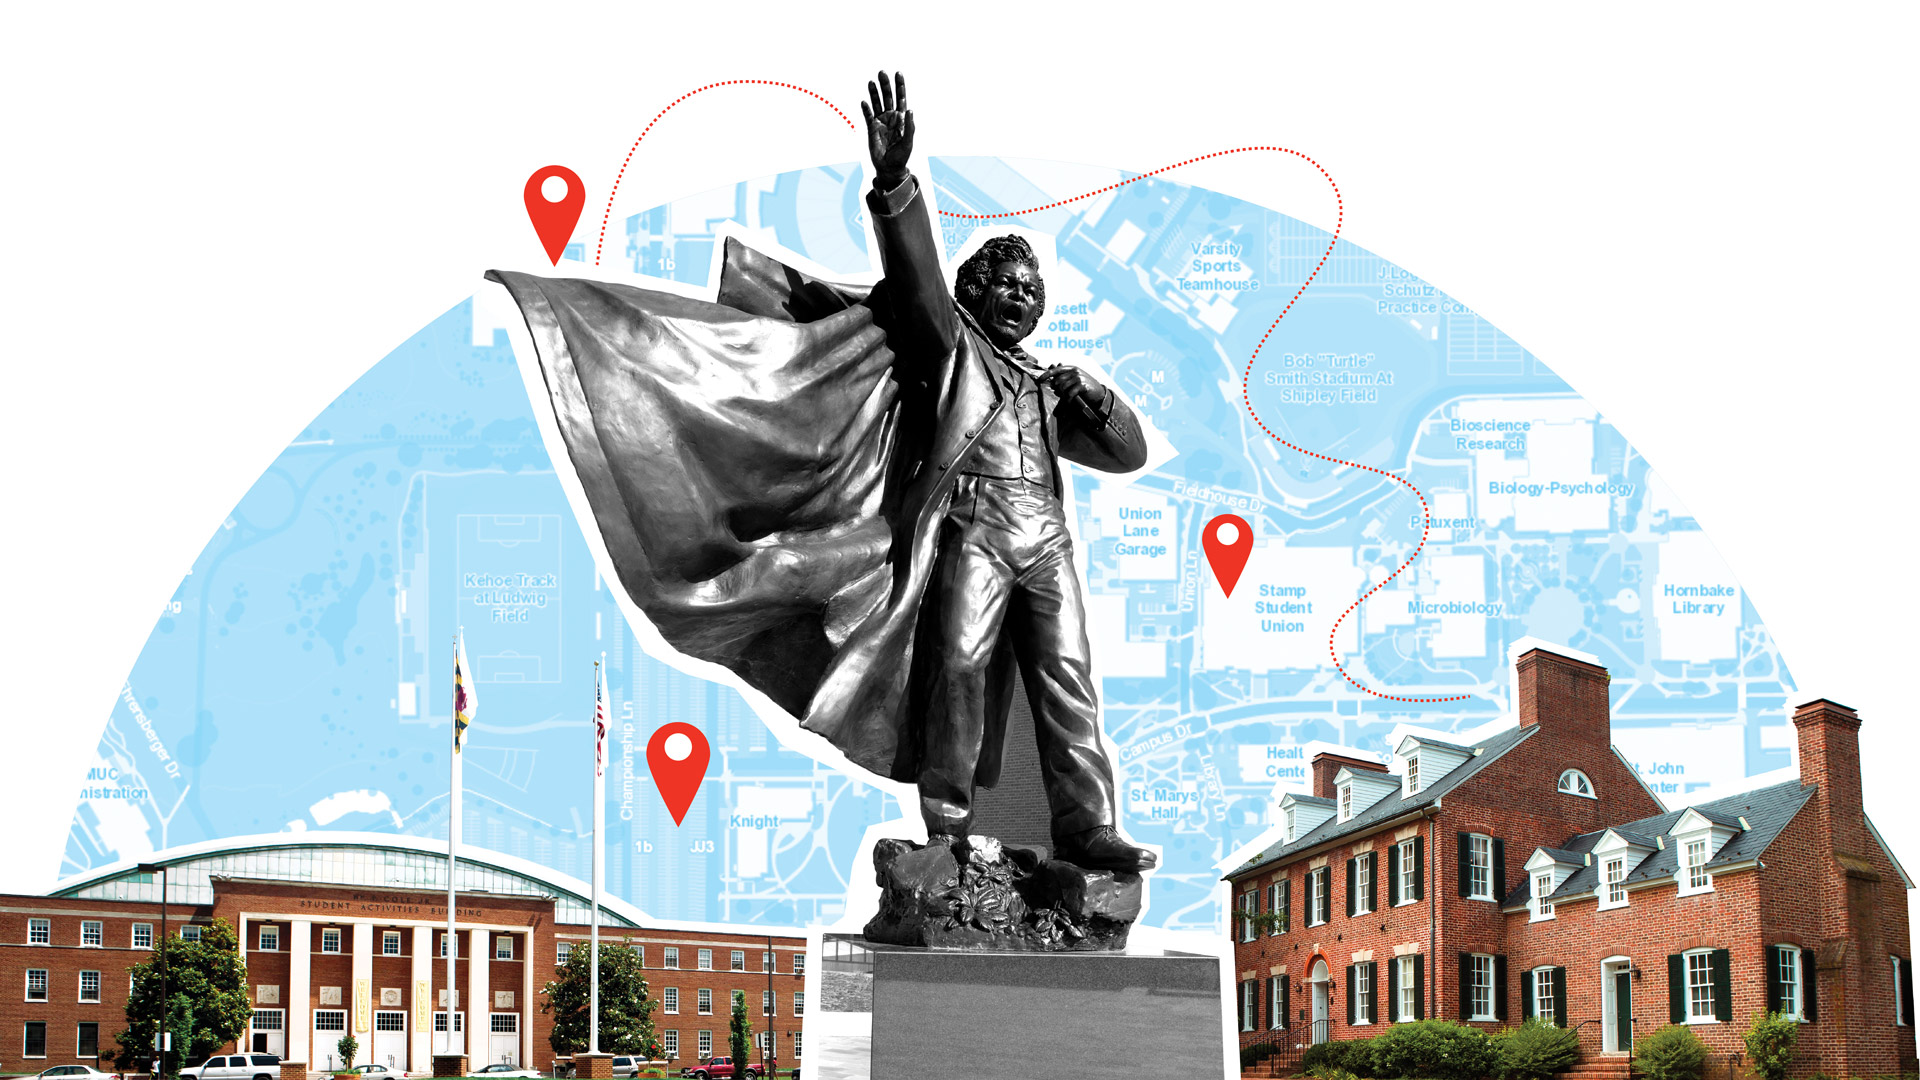 New Campus Tour Highlights the Impact of African Americans at UMD